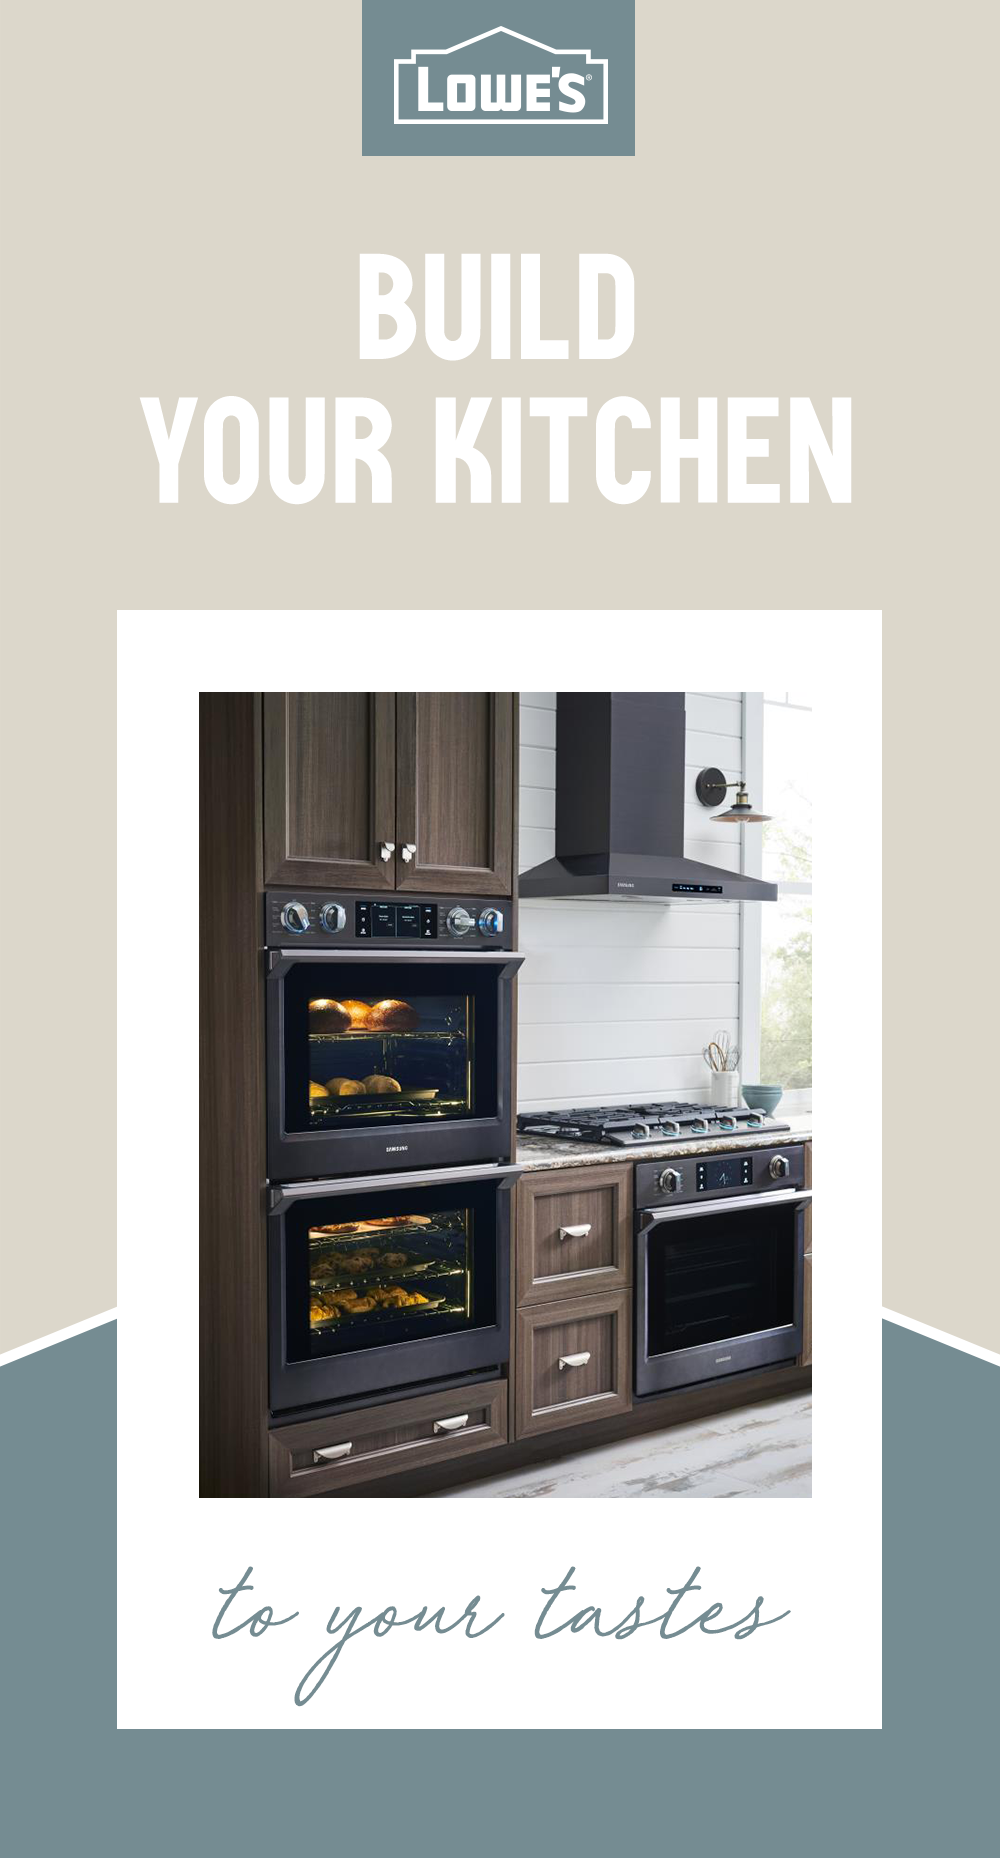 Get New Appliances Modern Cabinets And More When You Shop At Lowe S Visit Lowes Com T Home Decor Kitchen Kitchen Design